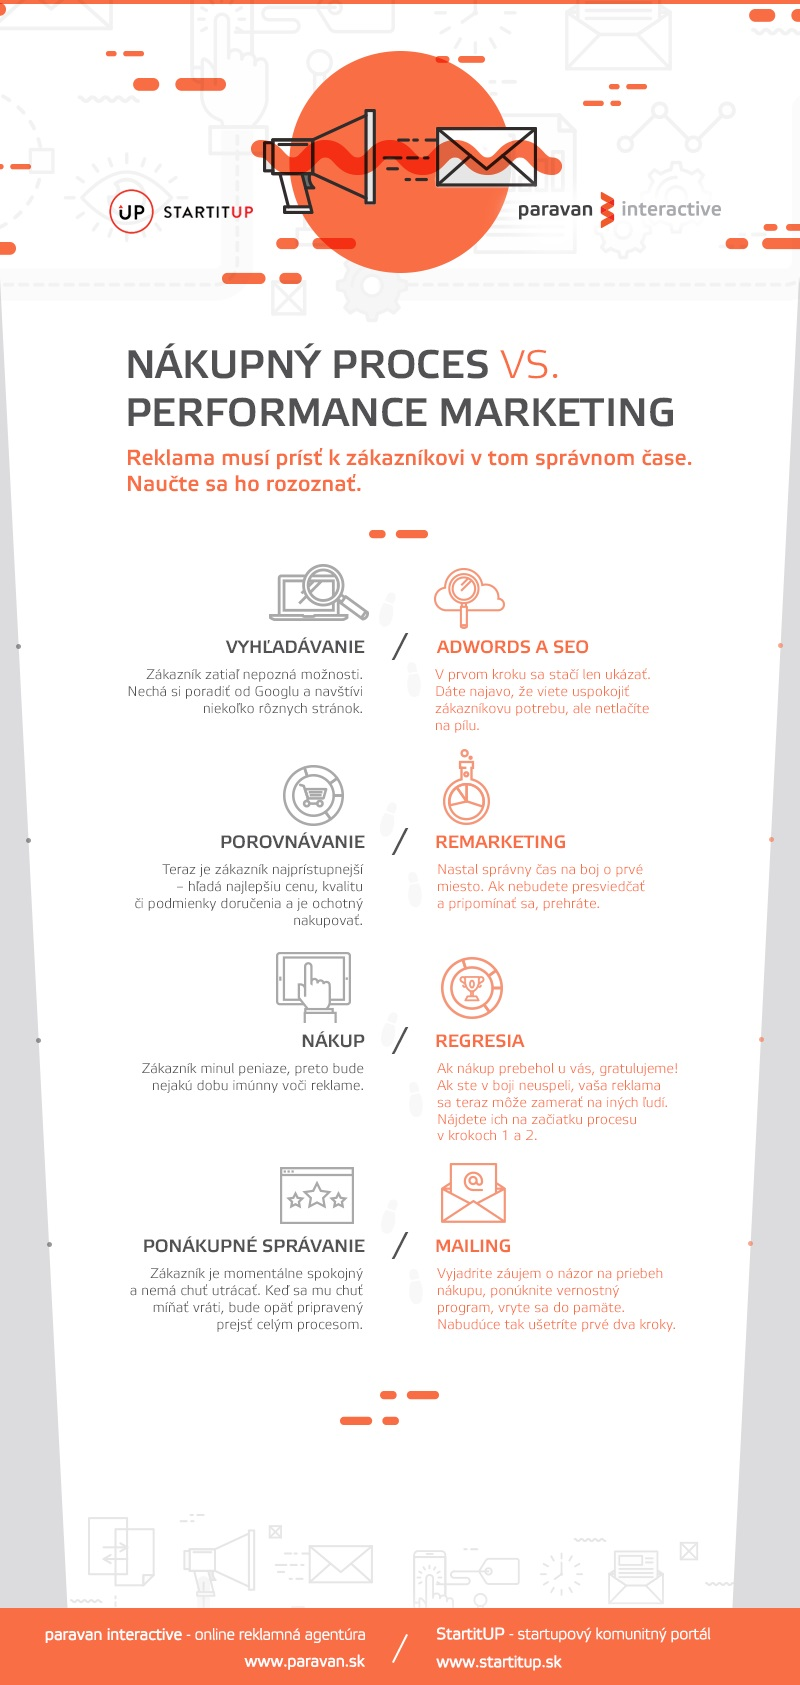 nakupny-proces-vs-performance-marketing-infografika